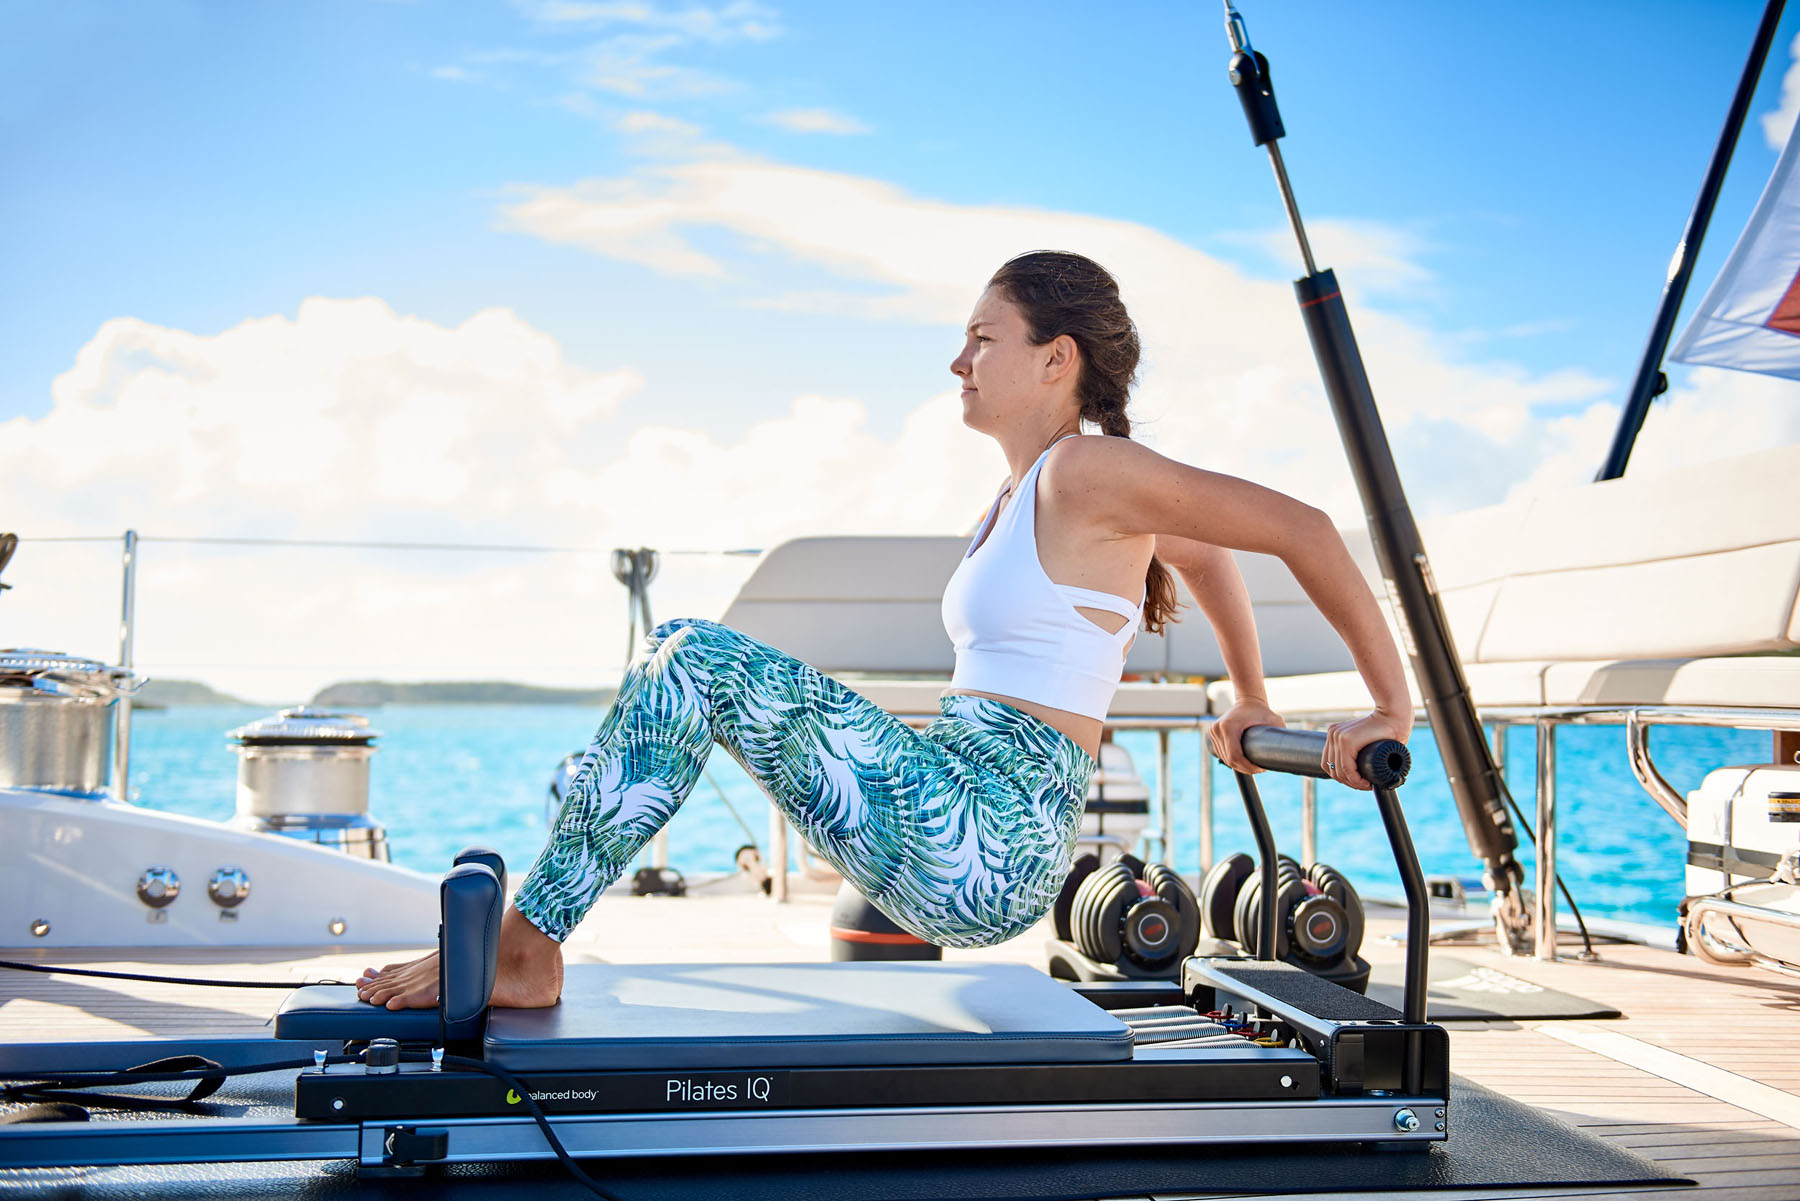 Exercising on a pilates machine onboard a yacht in the Caribbean